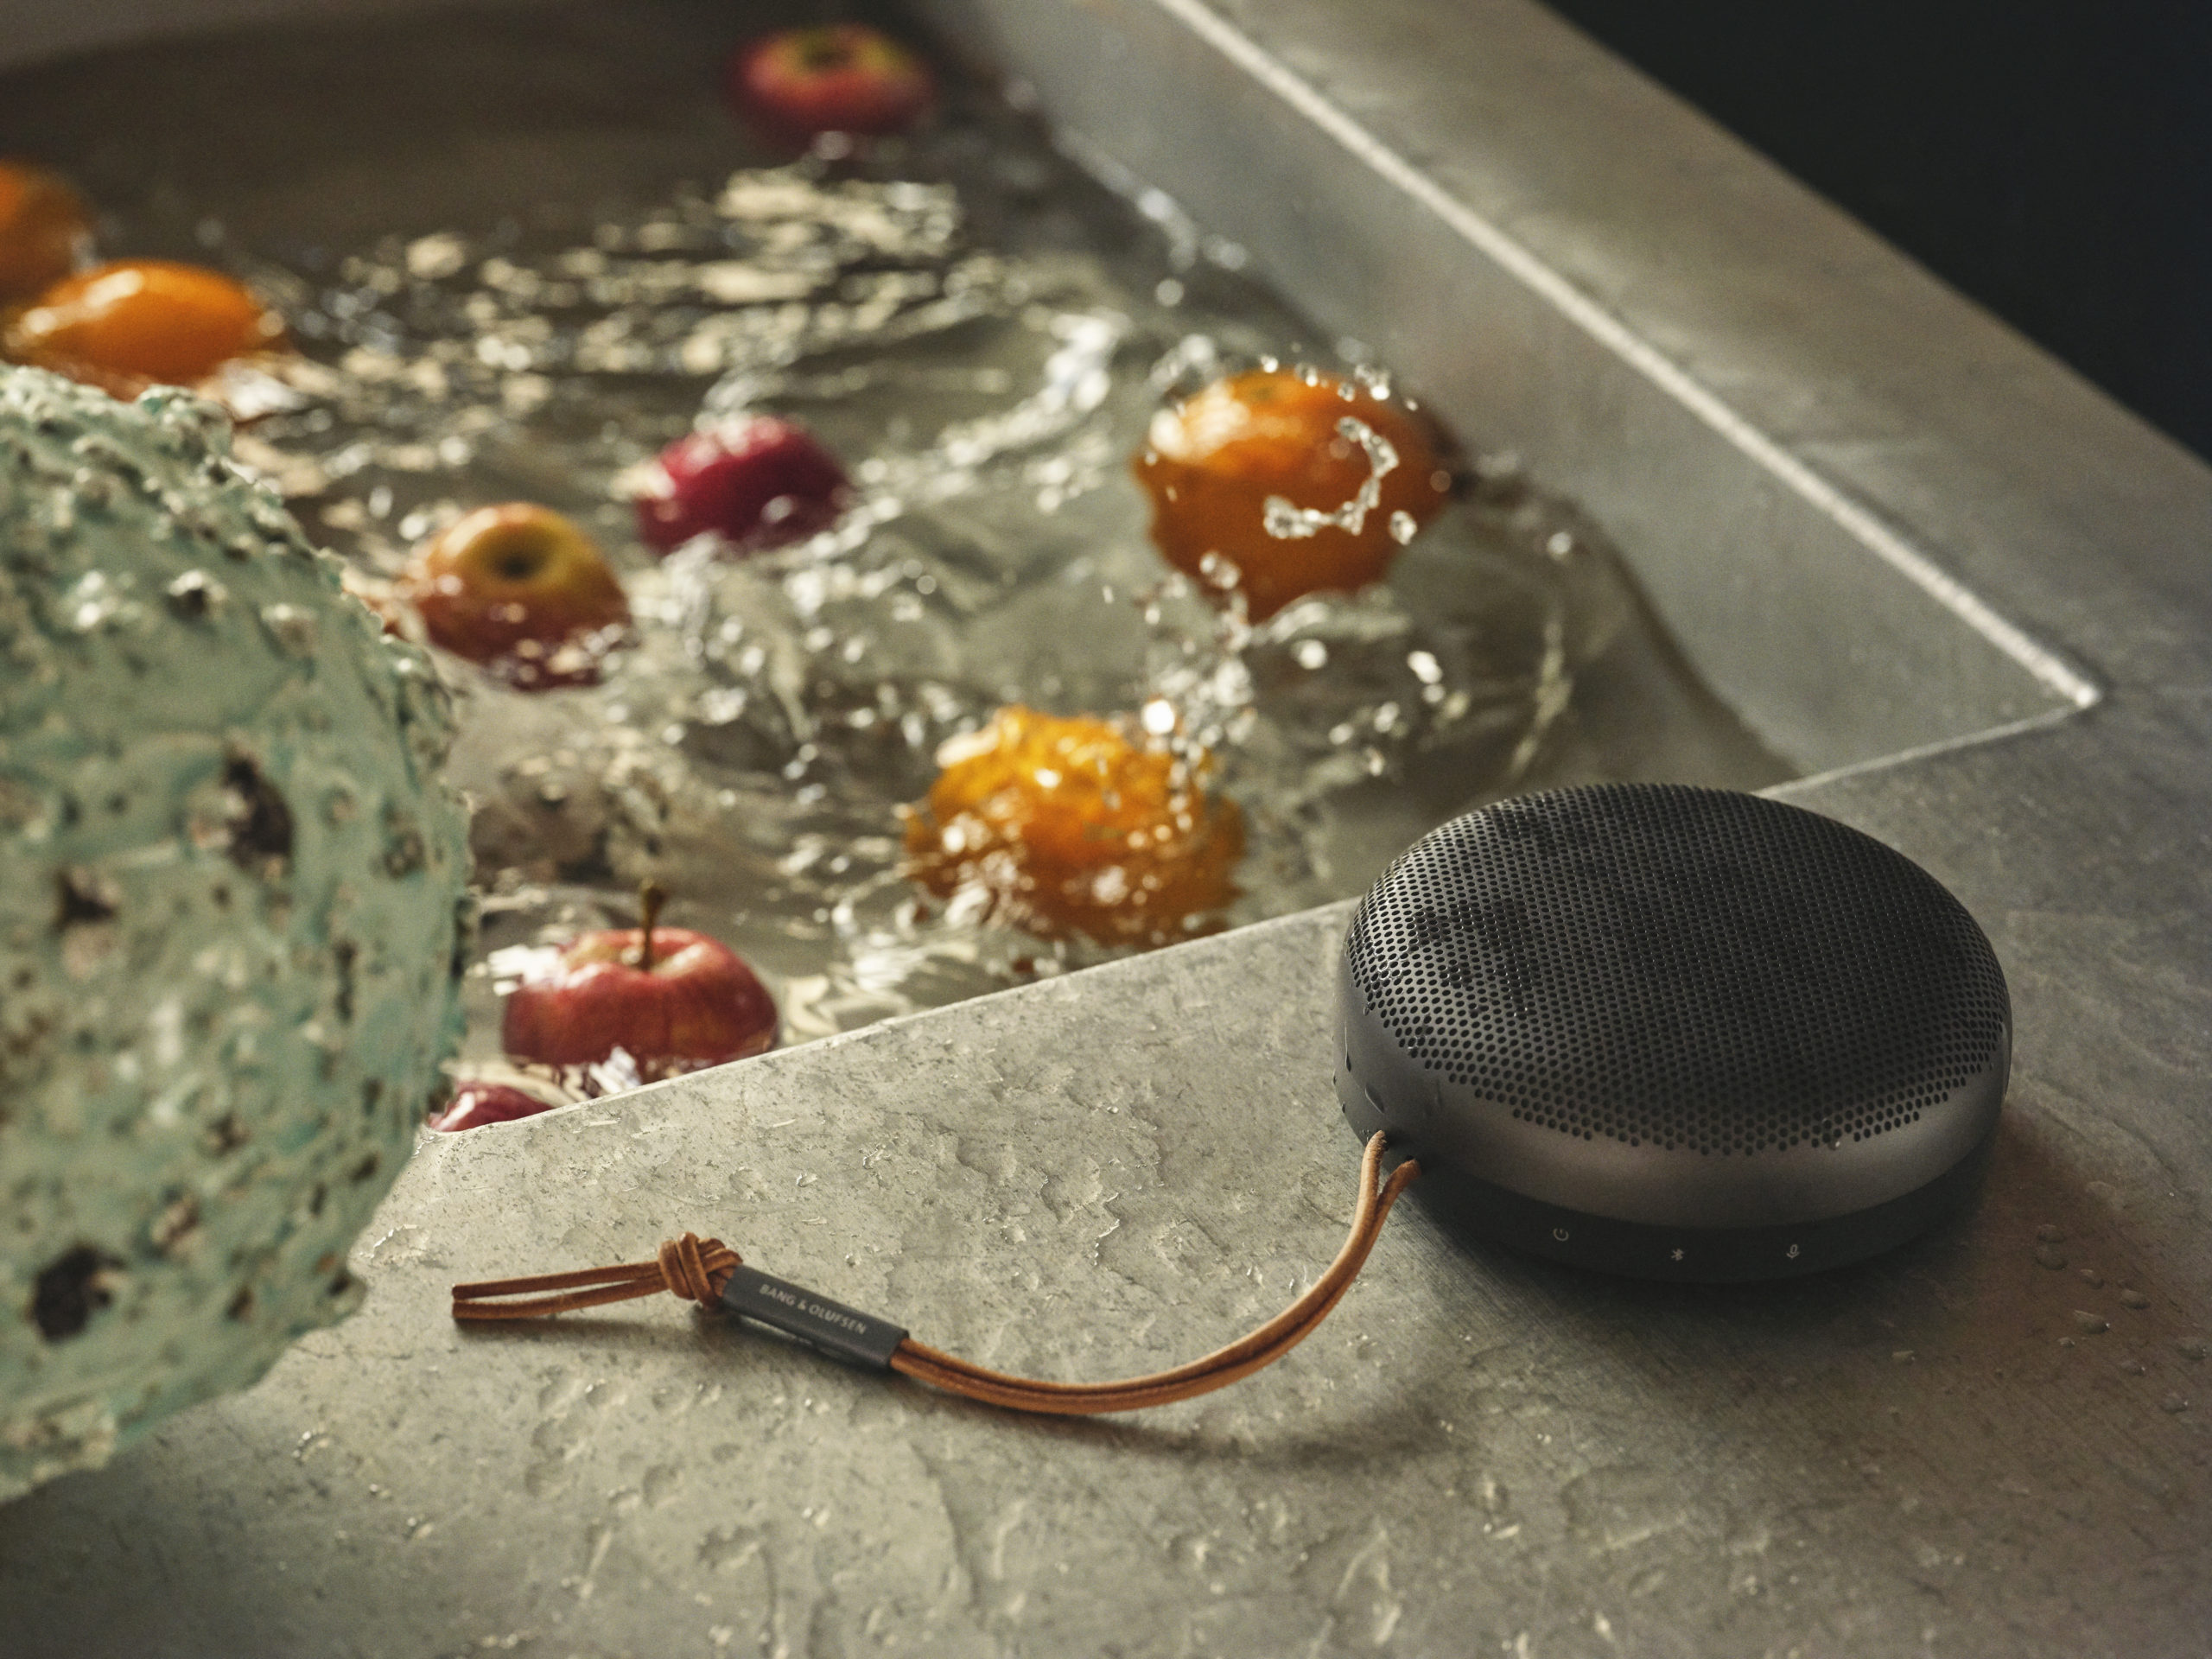 Bang & Olufsen Beosound A1 Bluetooth smart speaker press image courtesy of Bang & Olufsen